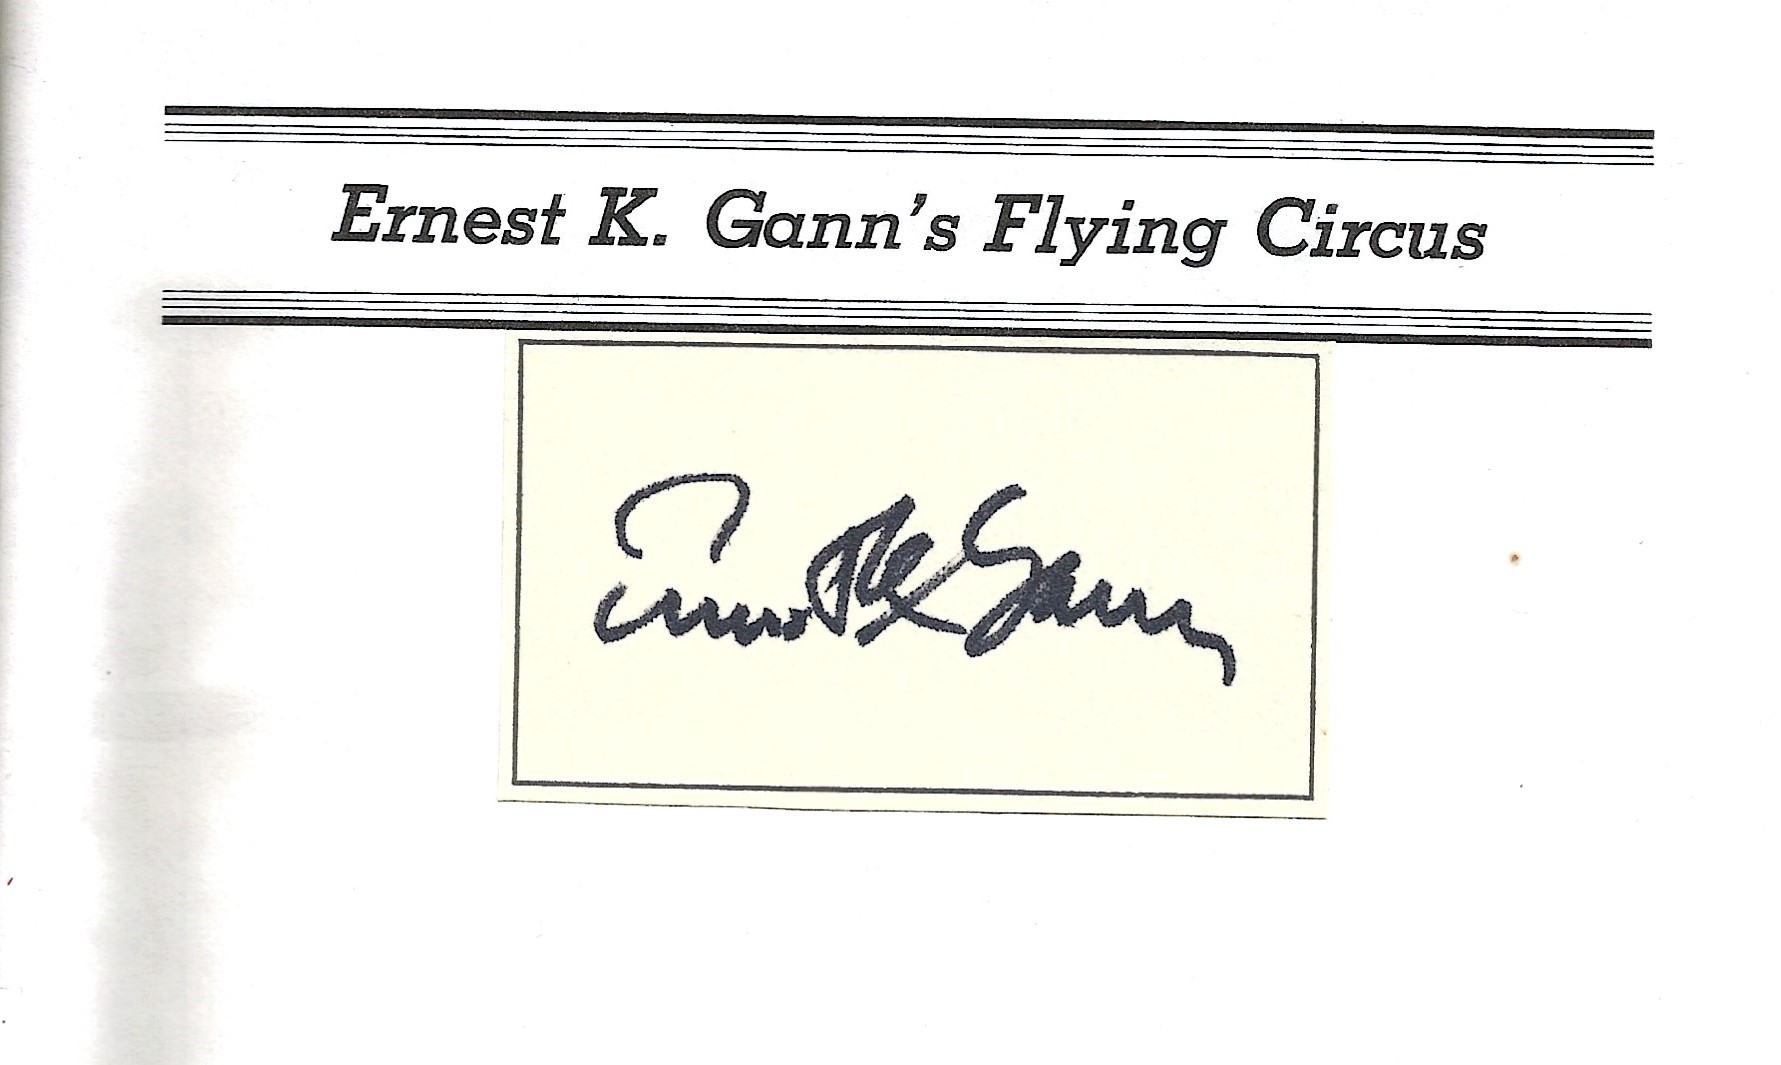 Ernest K. Ganns Flying Circus. A WW2 First Edition Hardback book. Signed on card which is glued into - Image 2 of 3